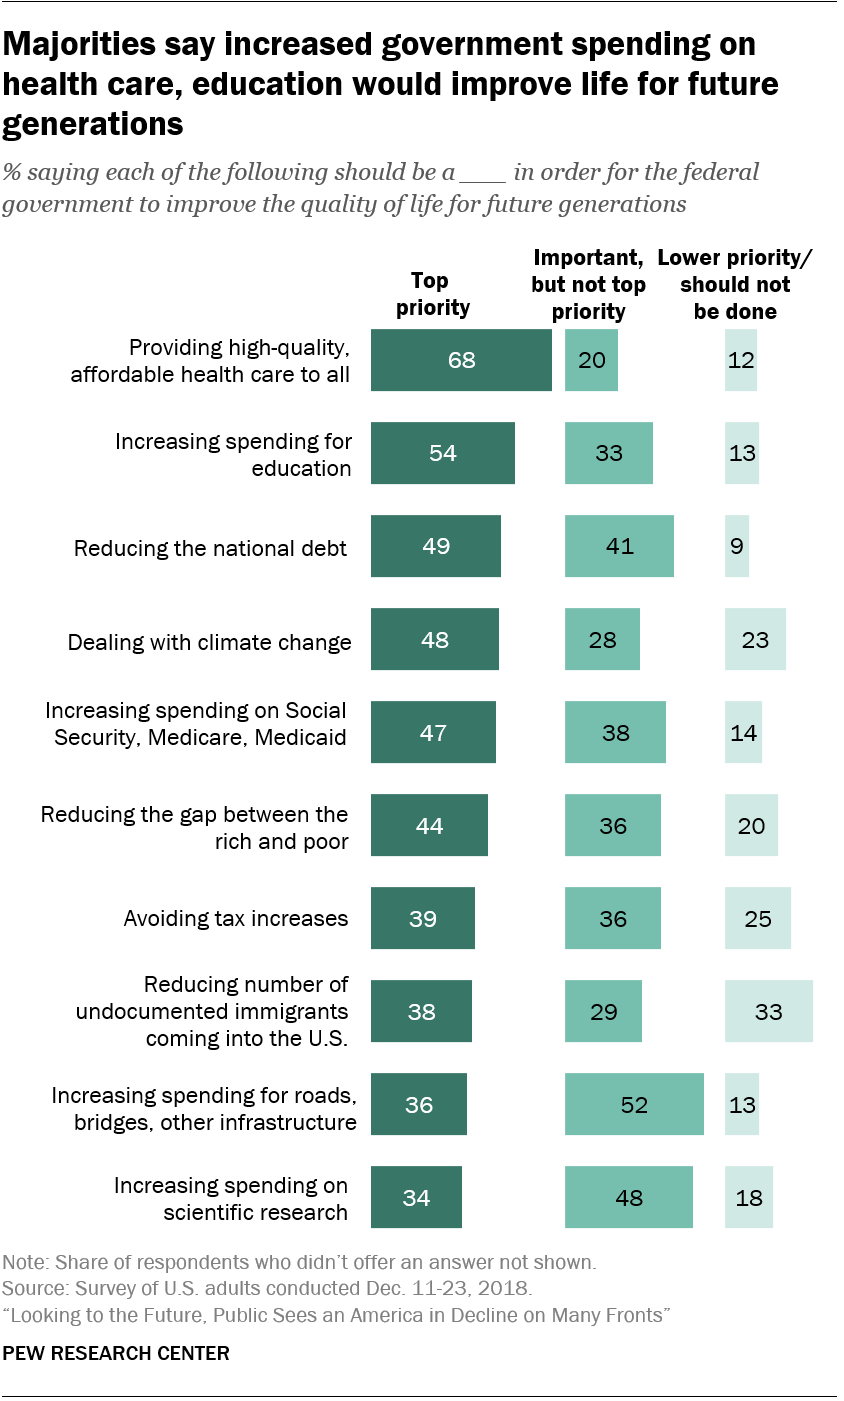 Majorities say increased government spending on health care, education would improve life for future generations